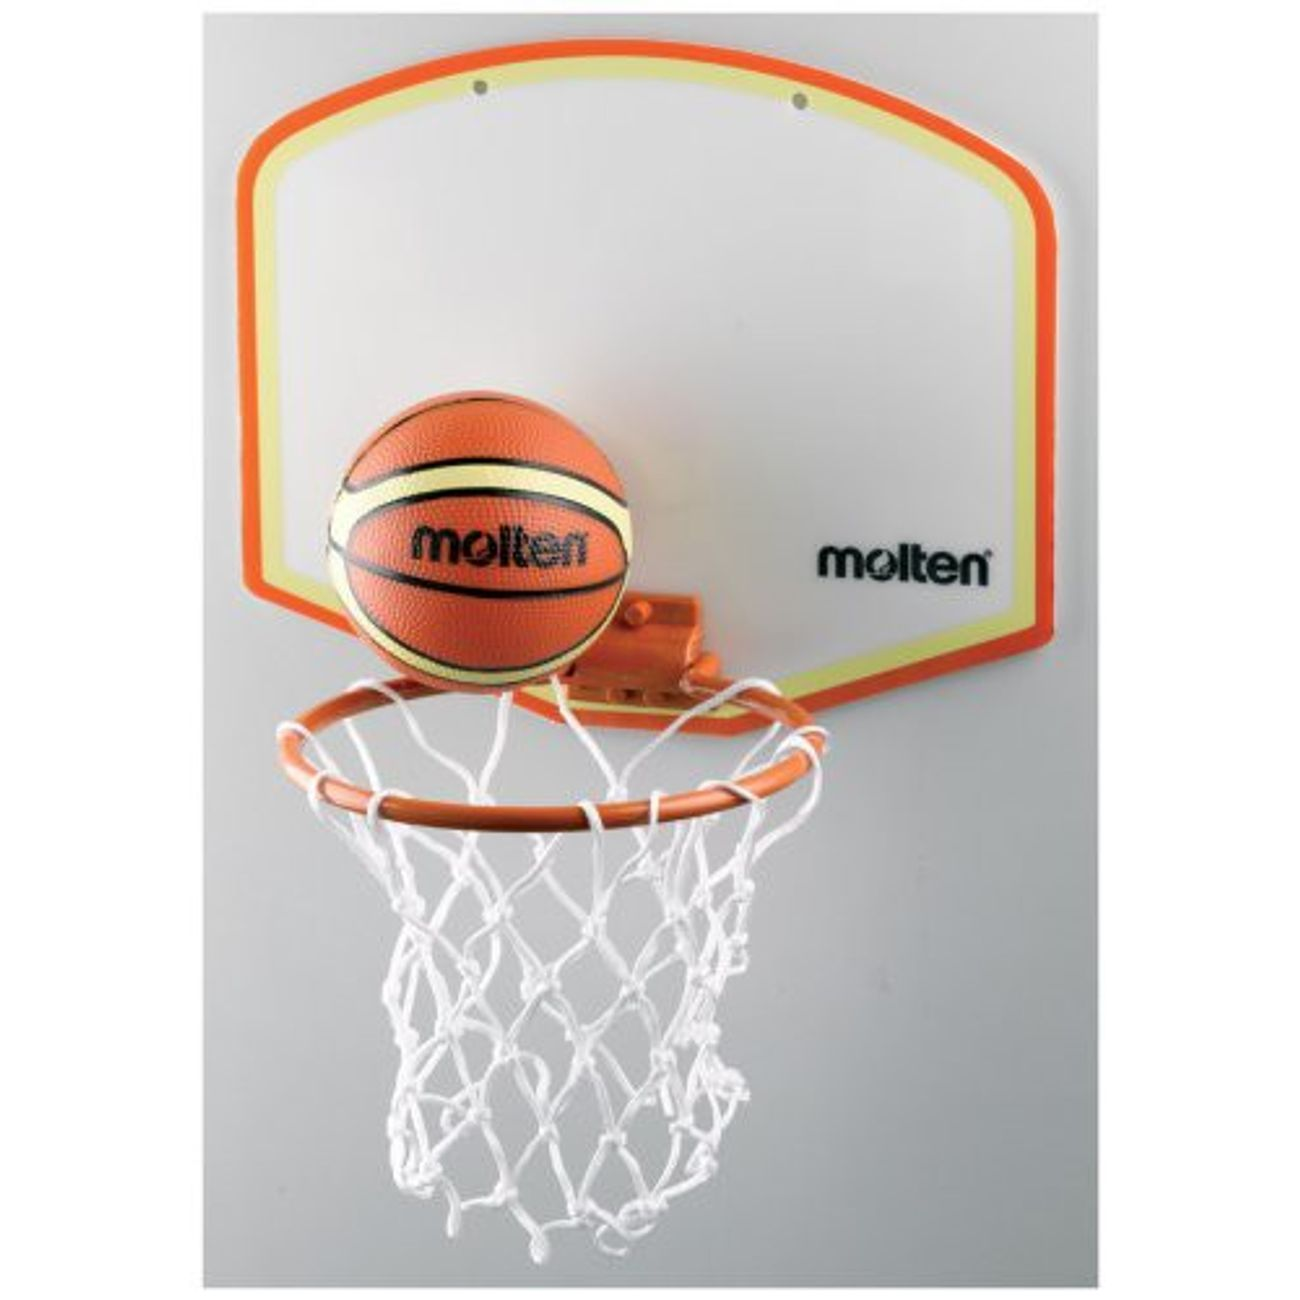 Basket ball adulte MOLTEN Molten KB100V Panneau de basket 2017